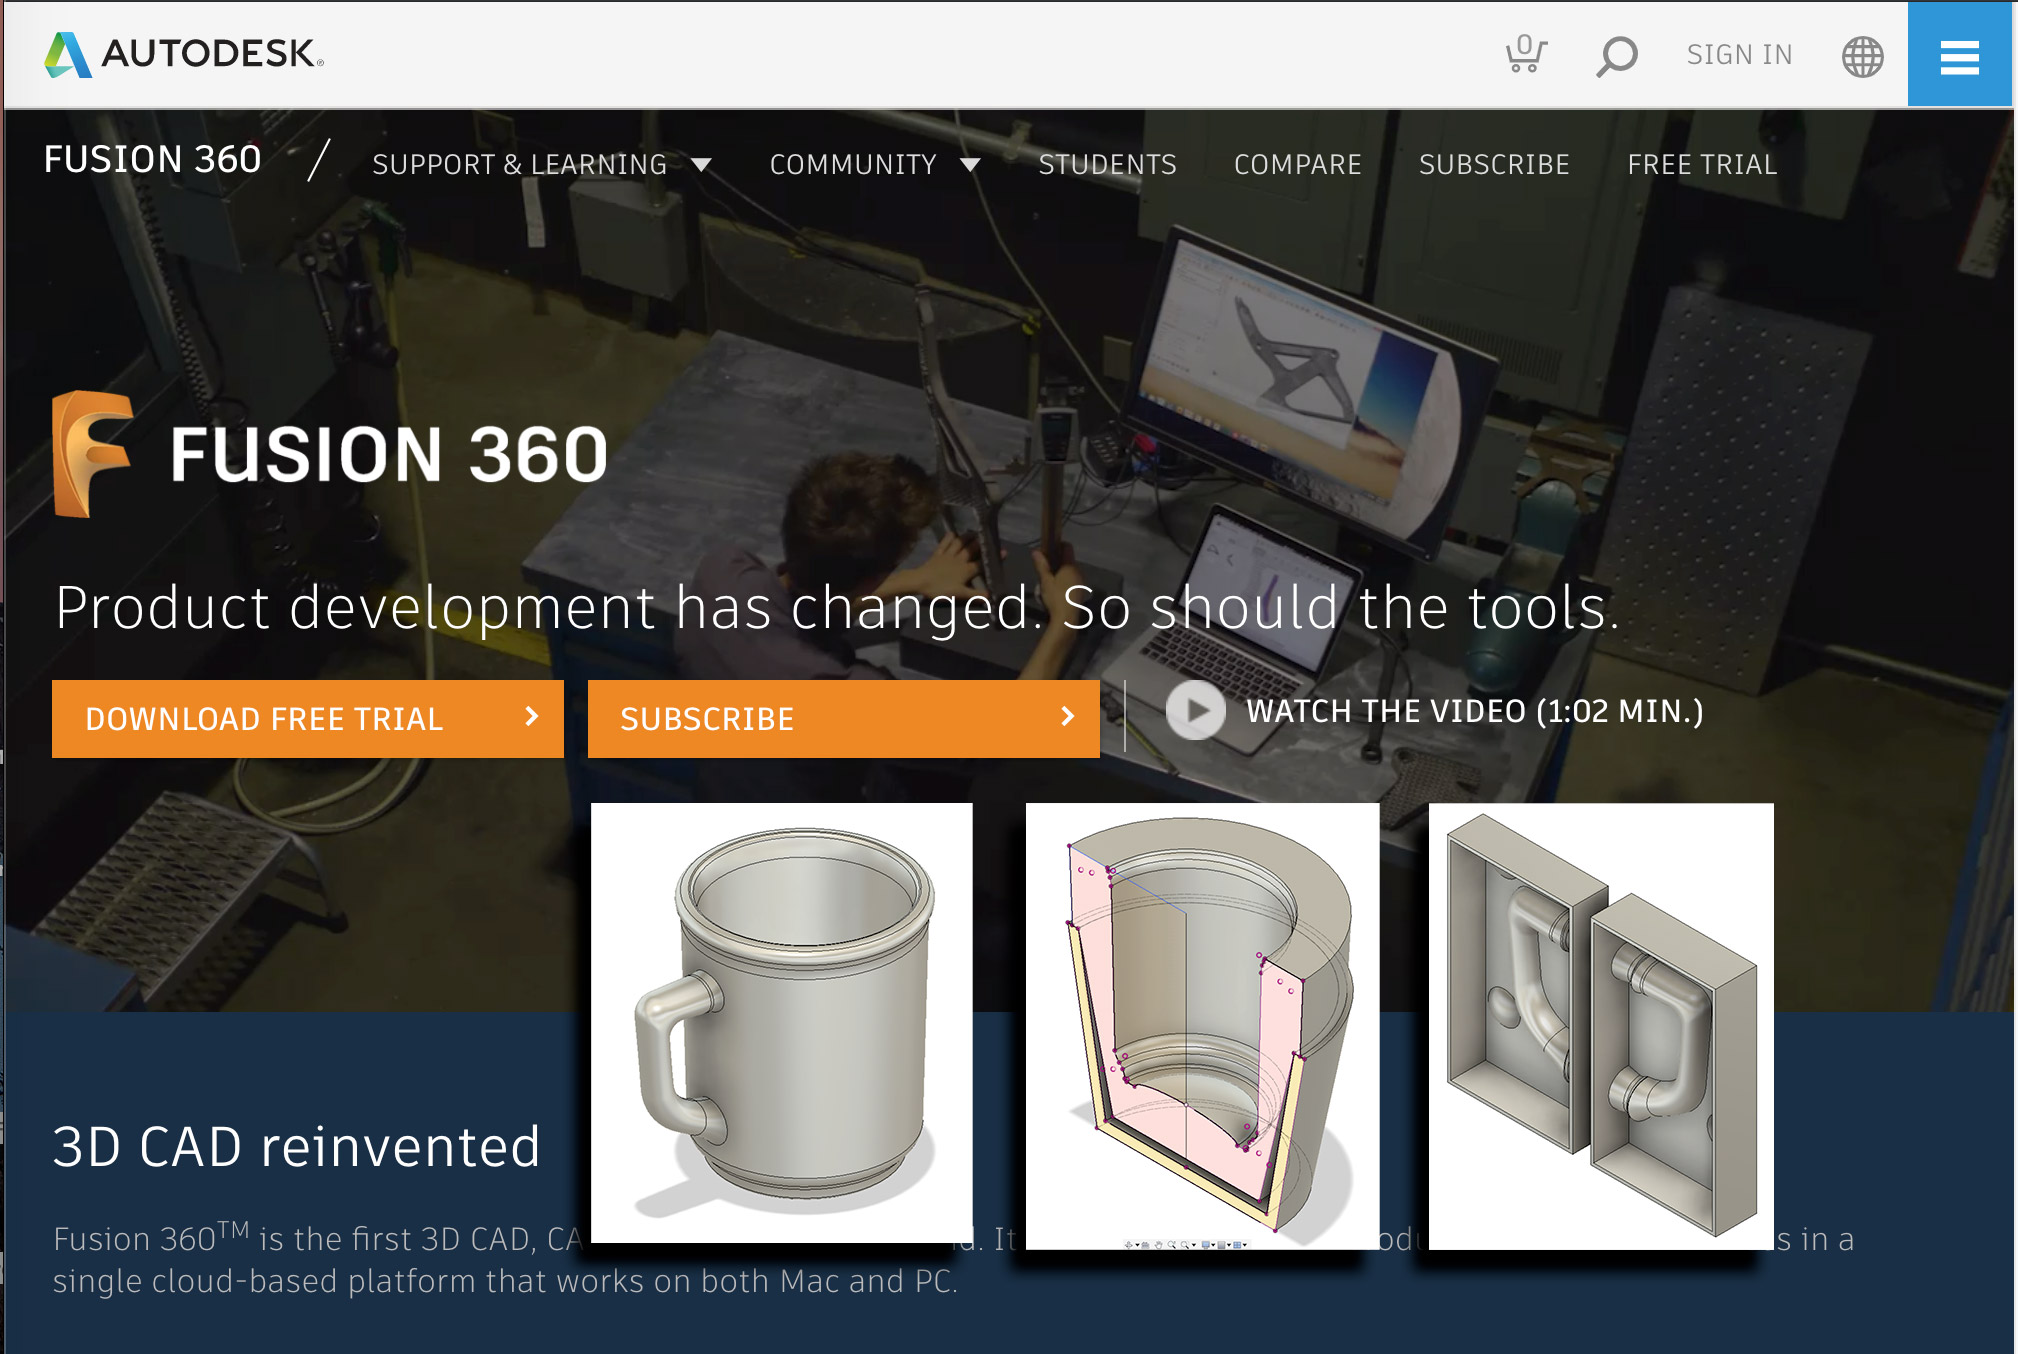 AutoDesk Fusion 360 home page